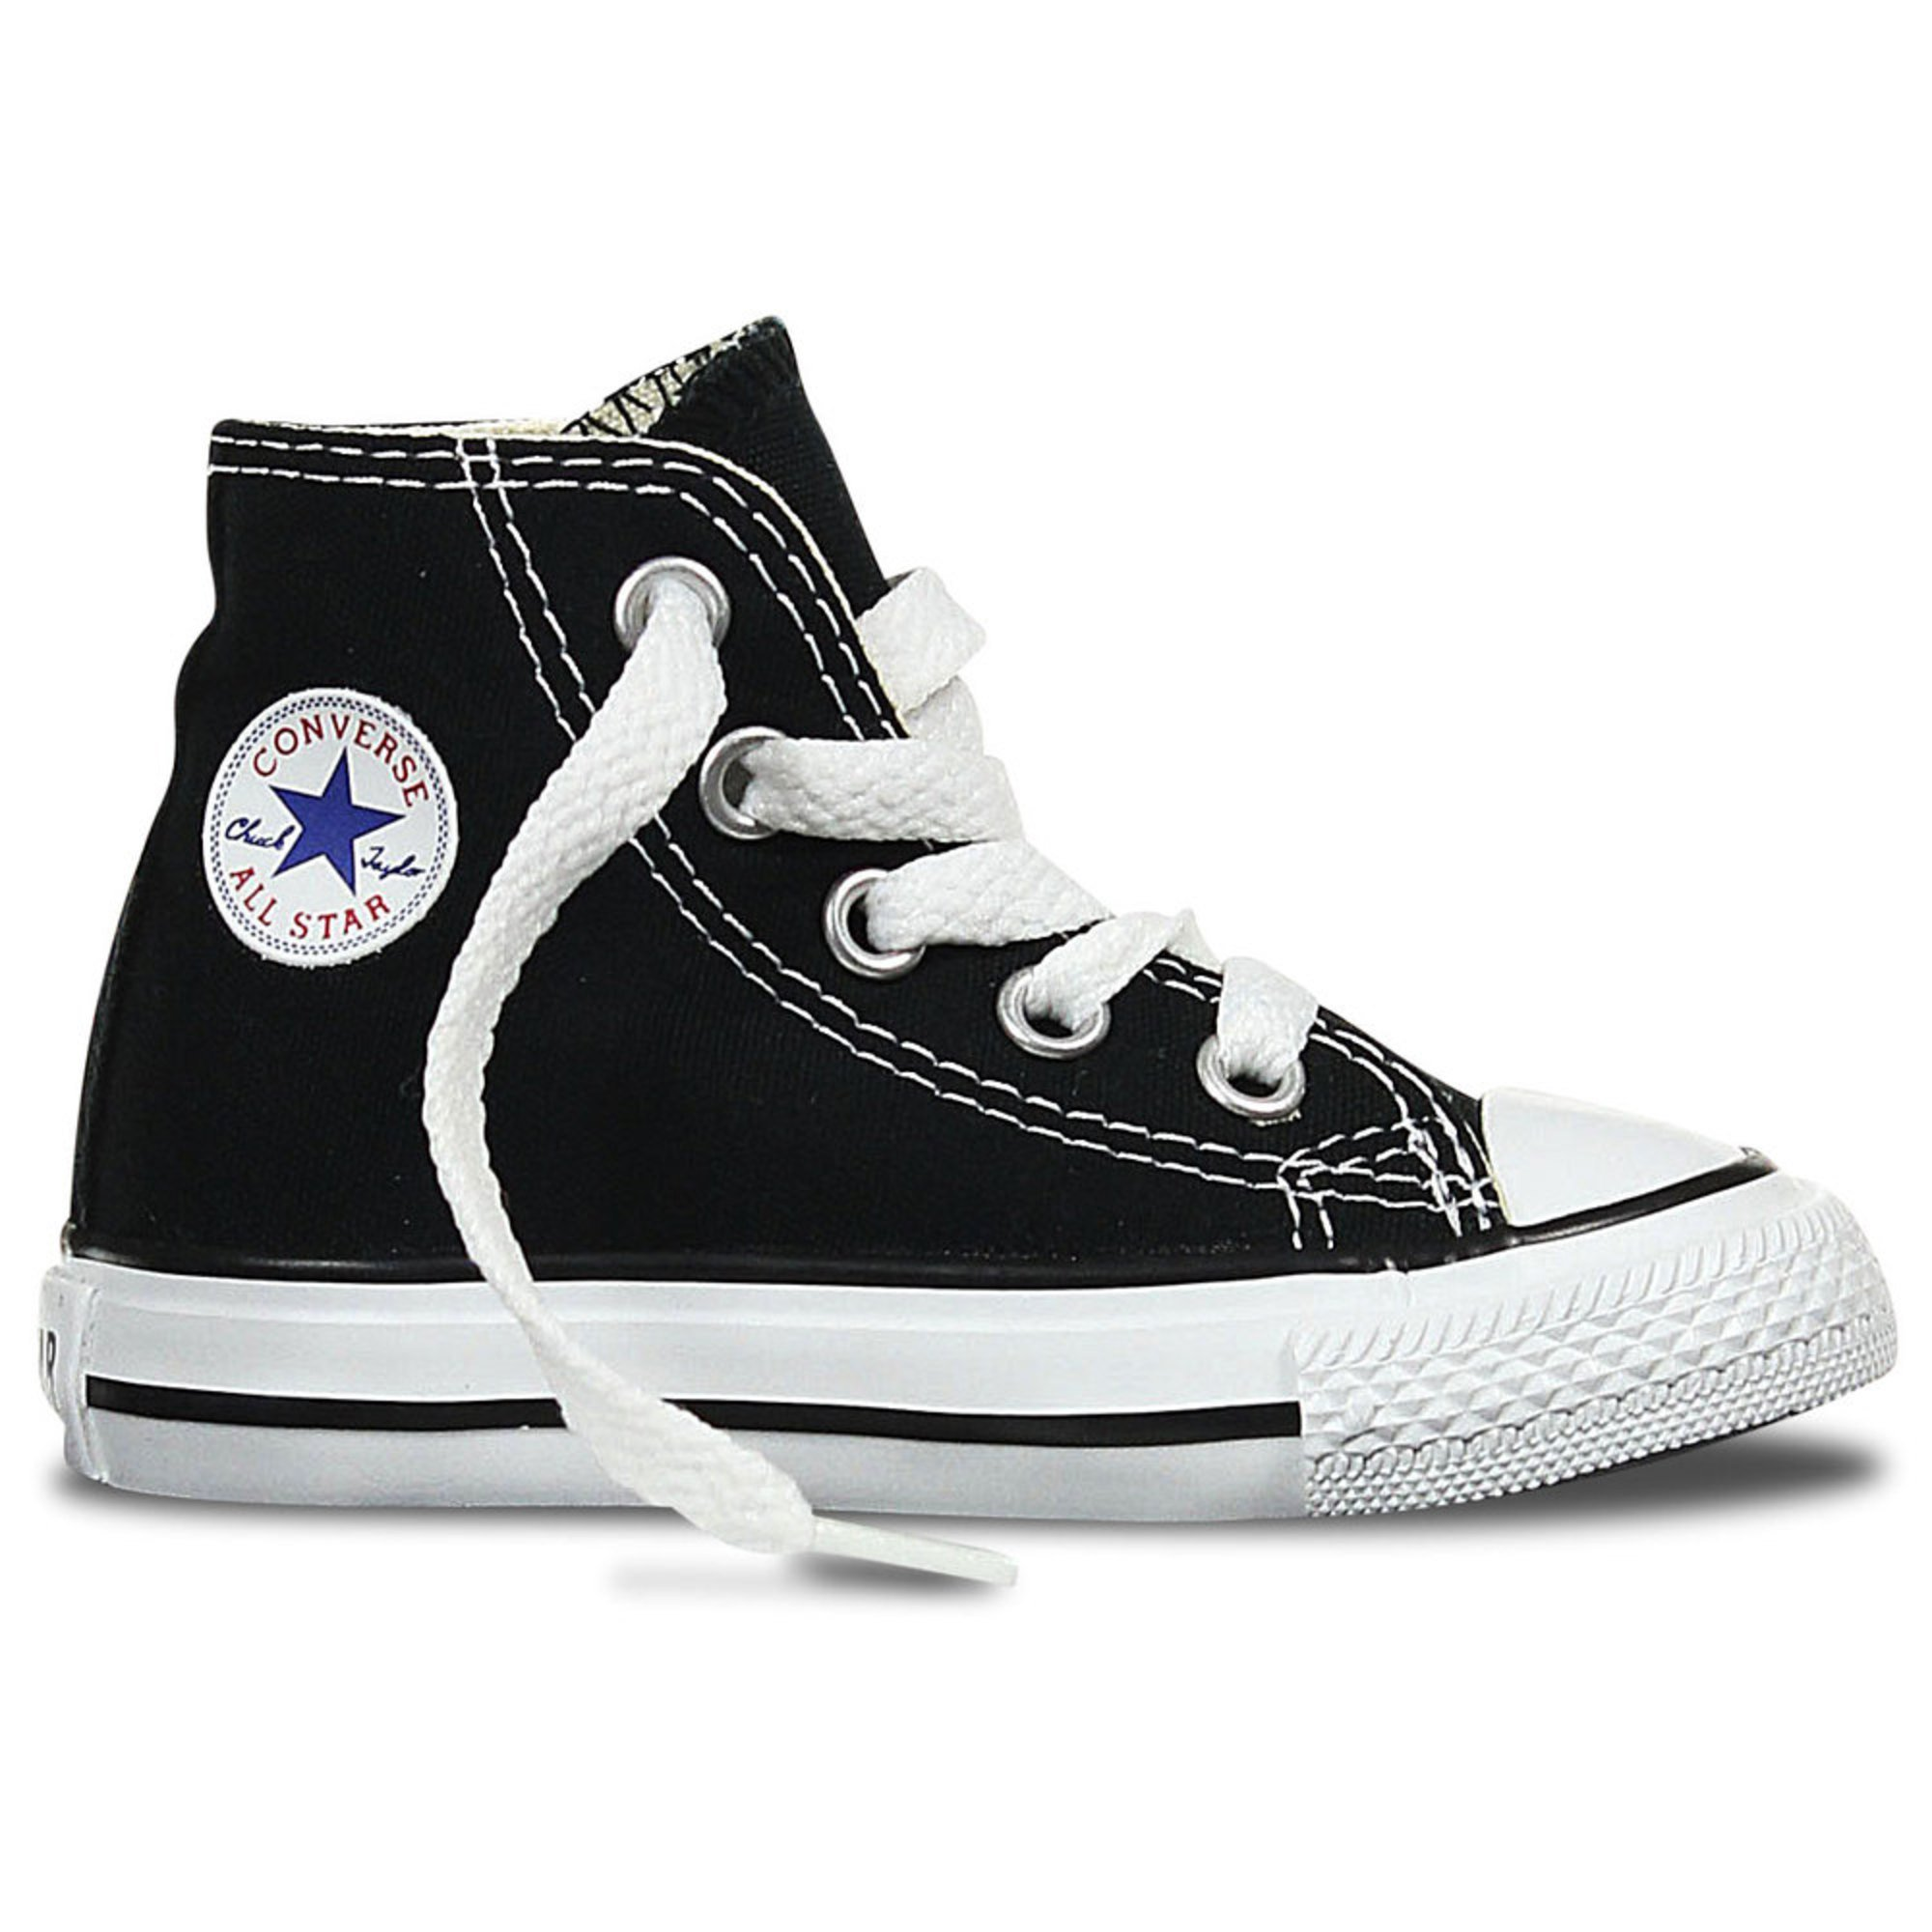 6c449e0144a Converse. Converse Boys Chuck Taylor All Star Hi Top Basketball Shoe ...